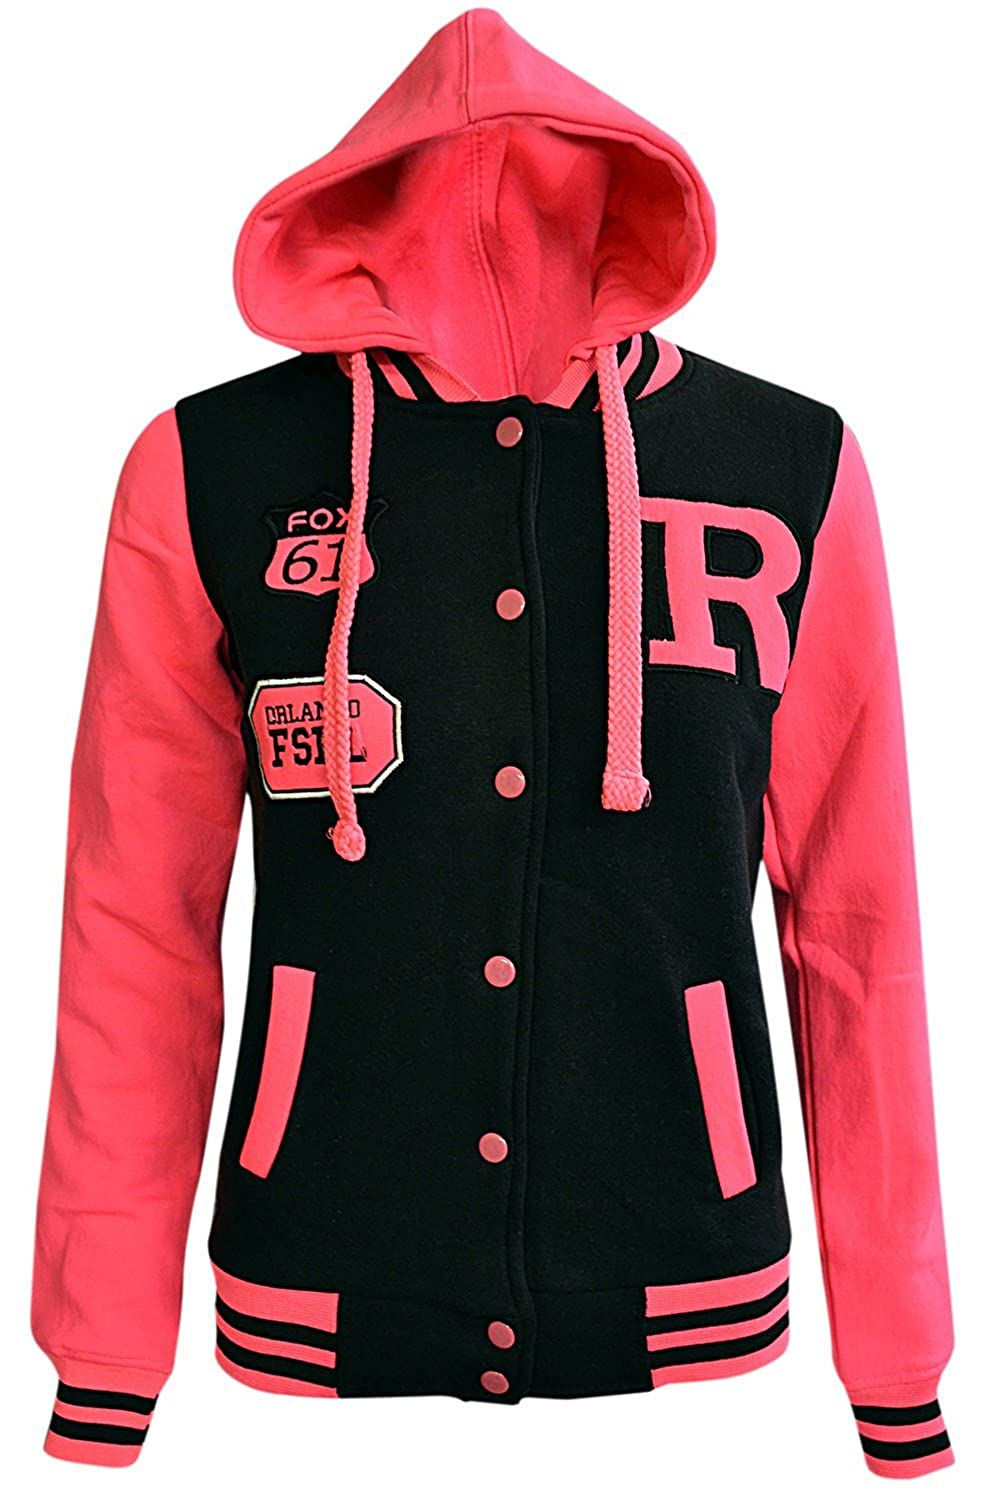 Noroze Girls Boys Kids Unisex Baseball R Hoodie Jacket